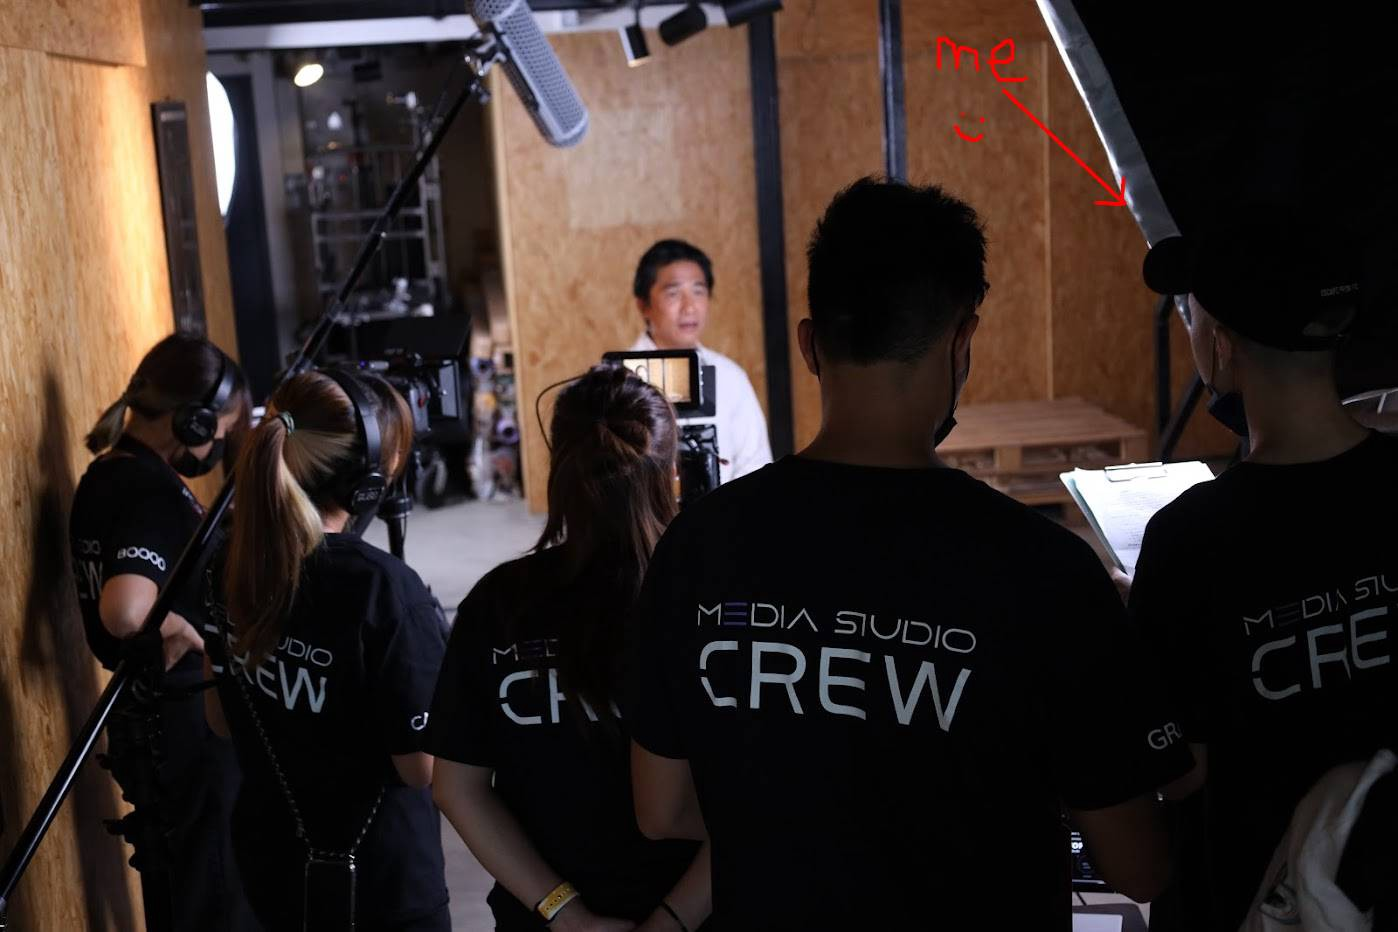 Actor Tony Leung Chiu-wai is in a warehouse. A camera crew of 5 wearing black t-shirts with media studio logo is shooting the interview.